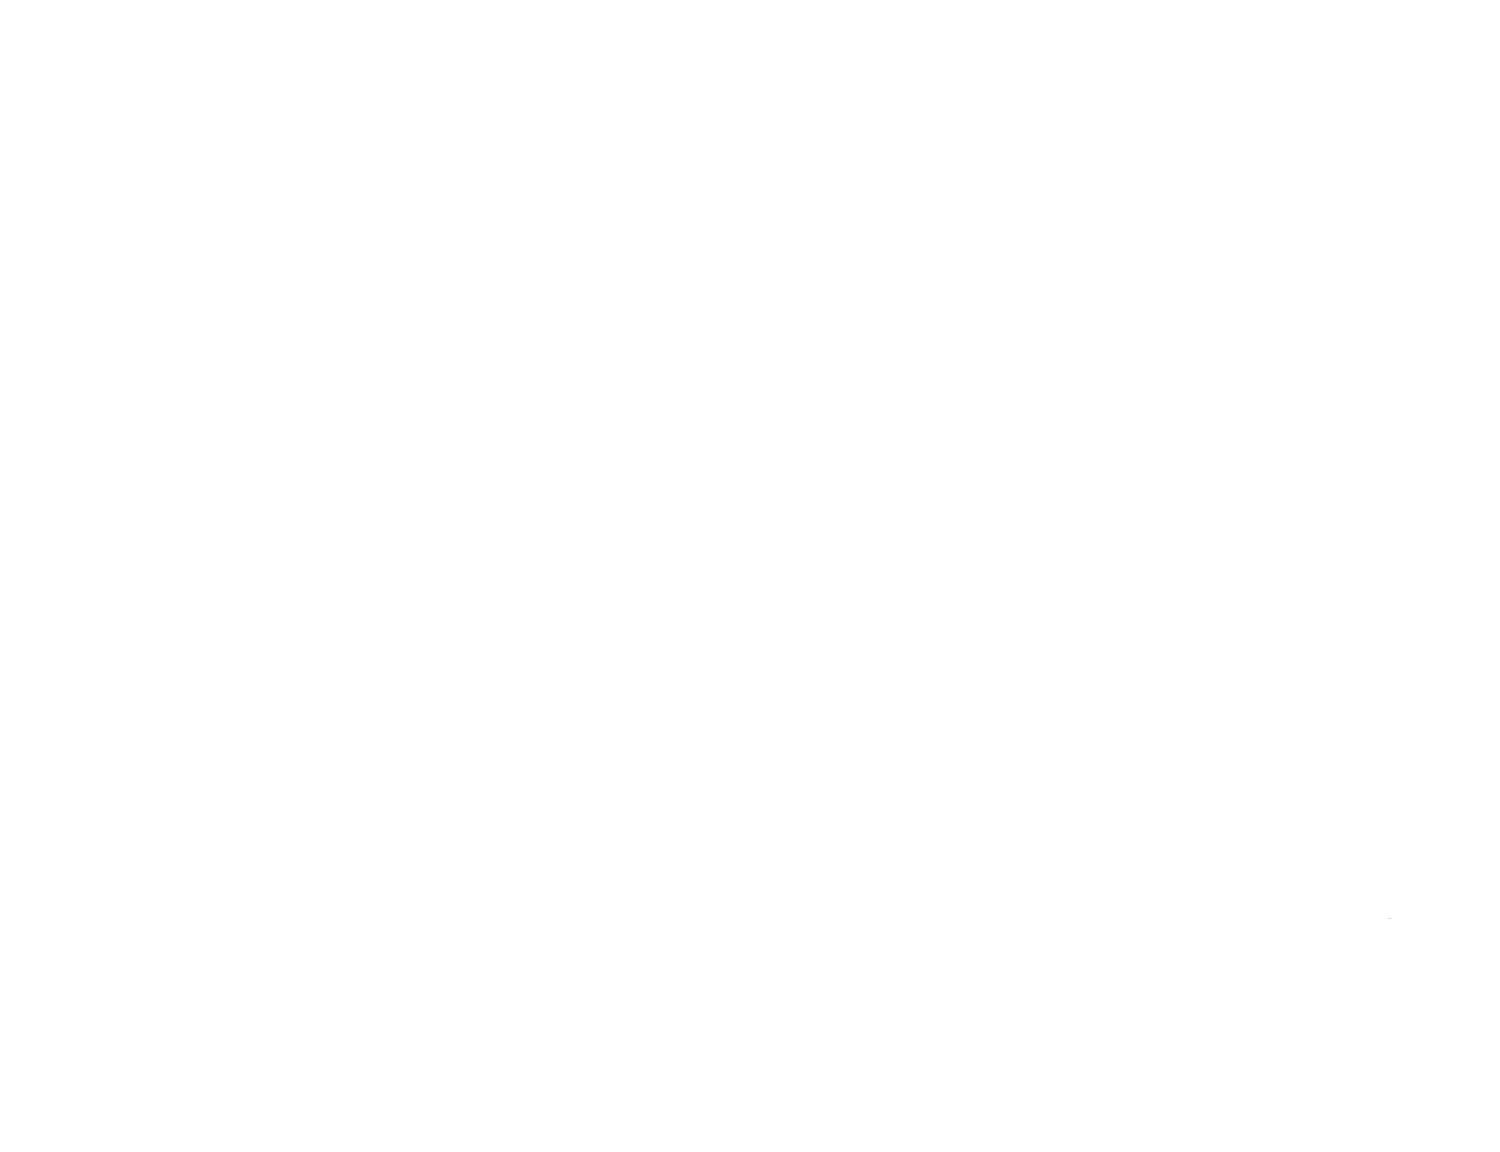 SWIFT SHORE CONSTRUCTION